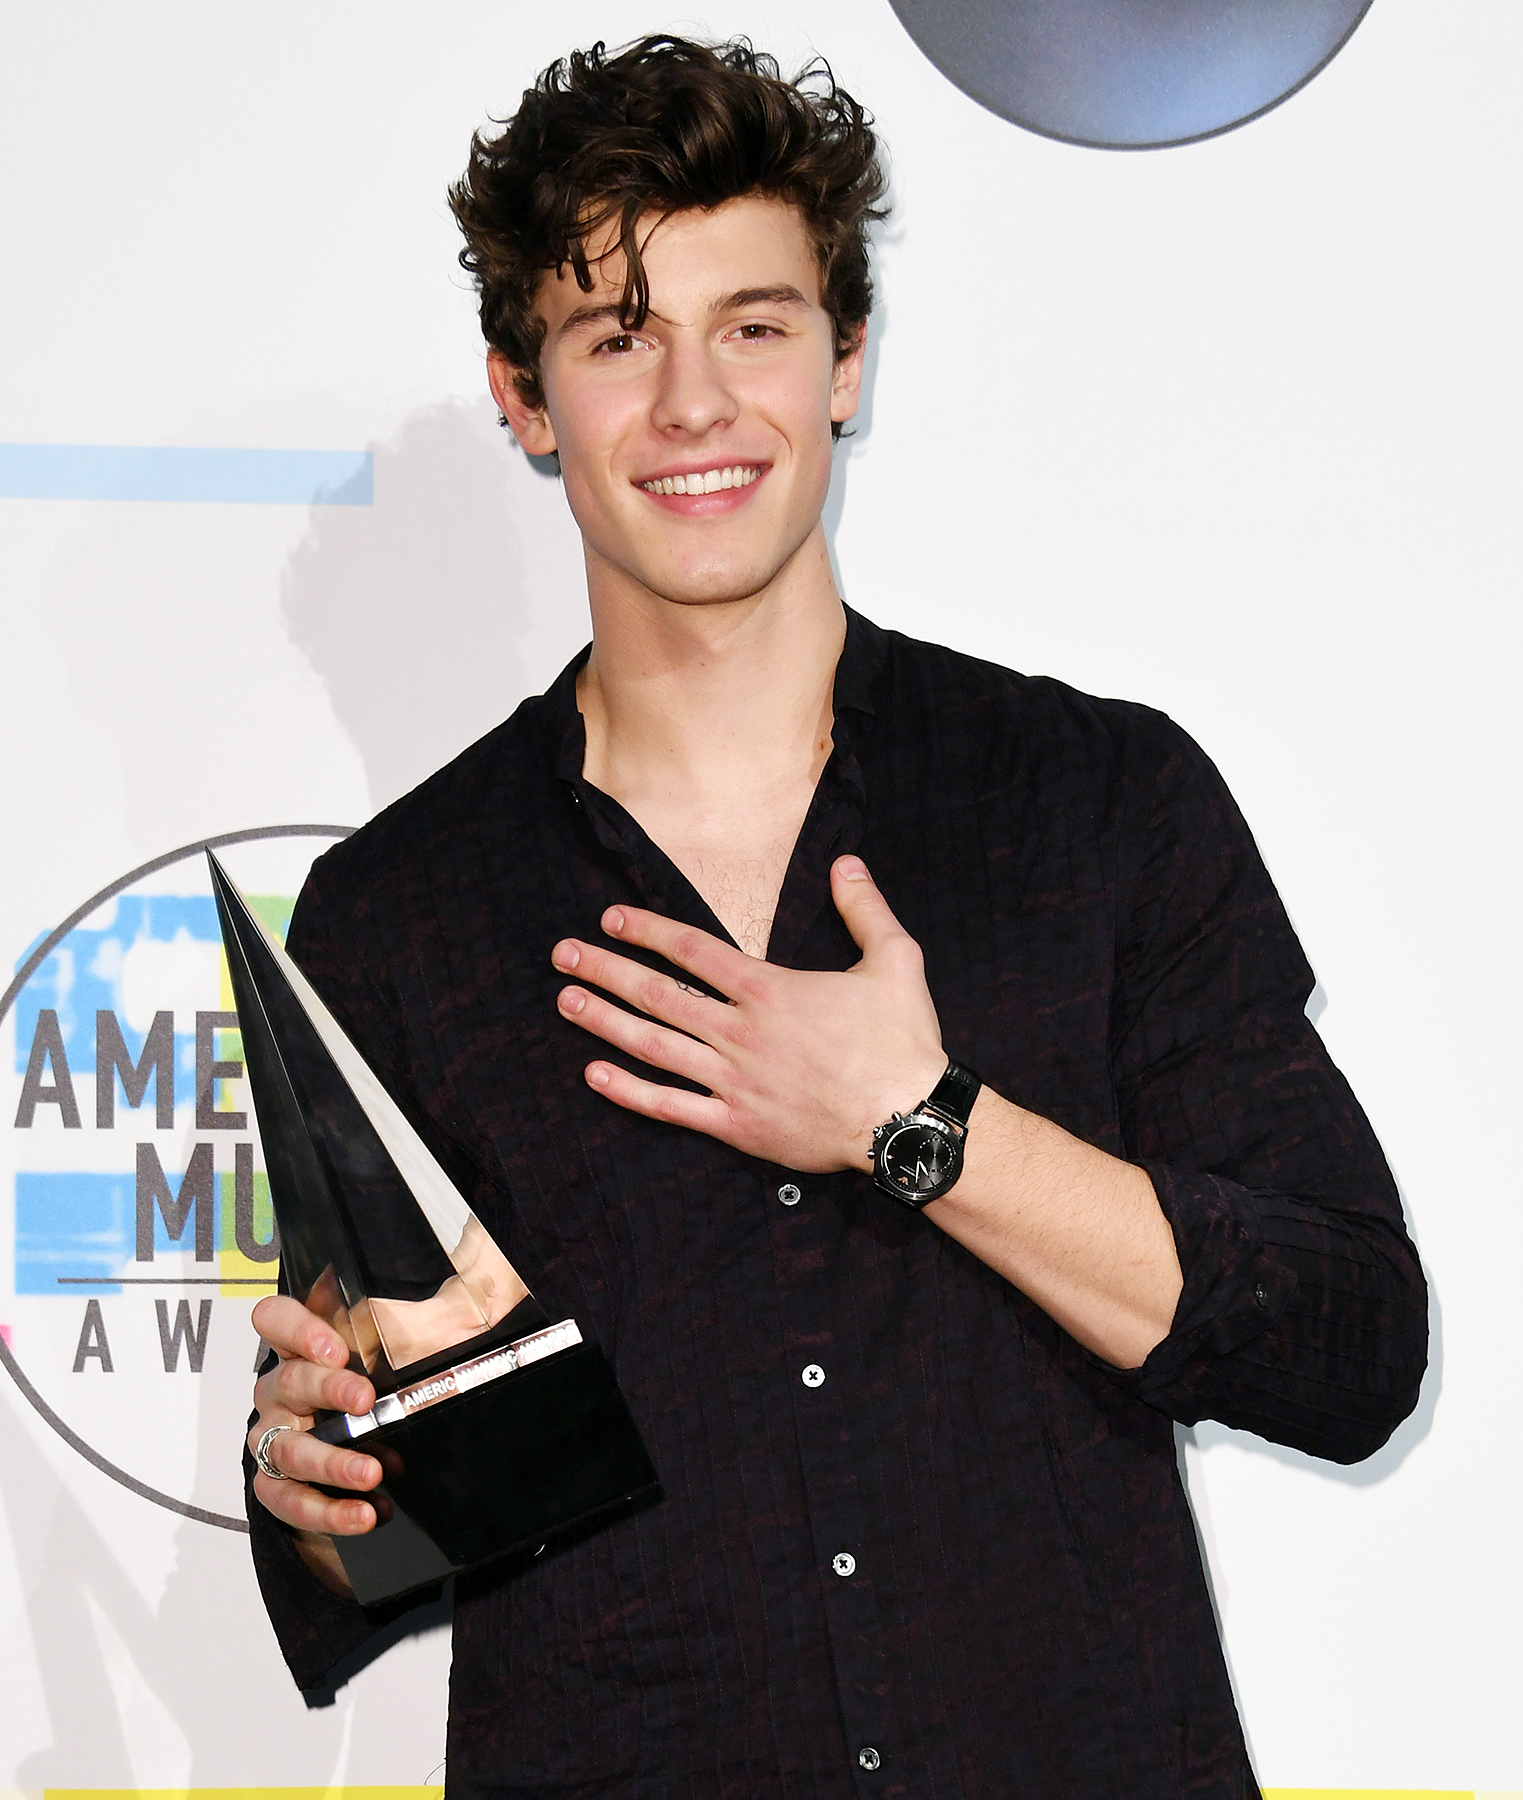 shawn mendes earned his ama trophy last